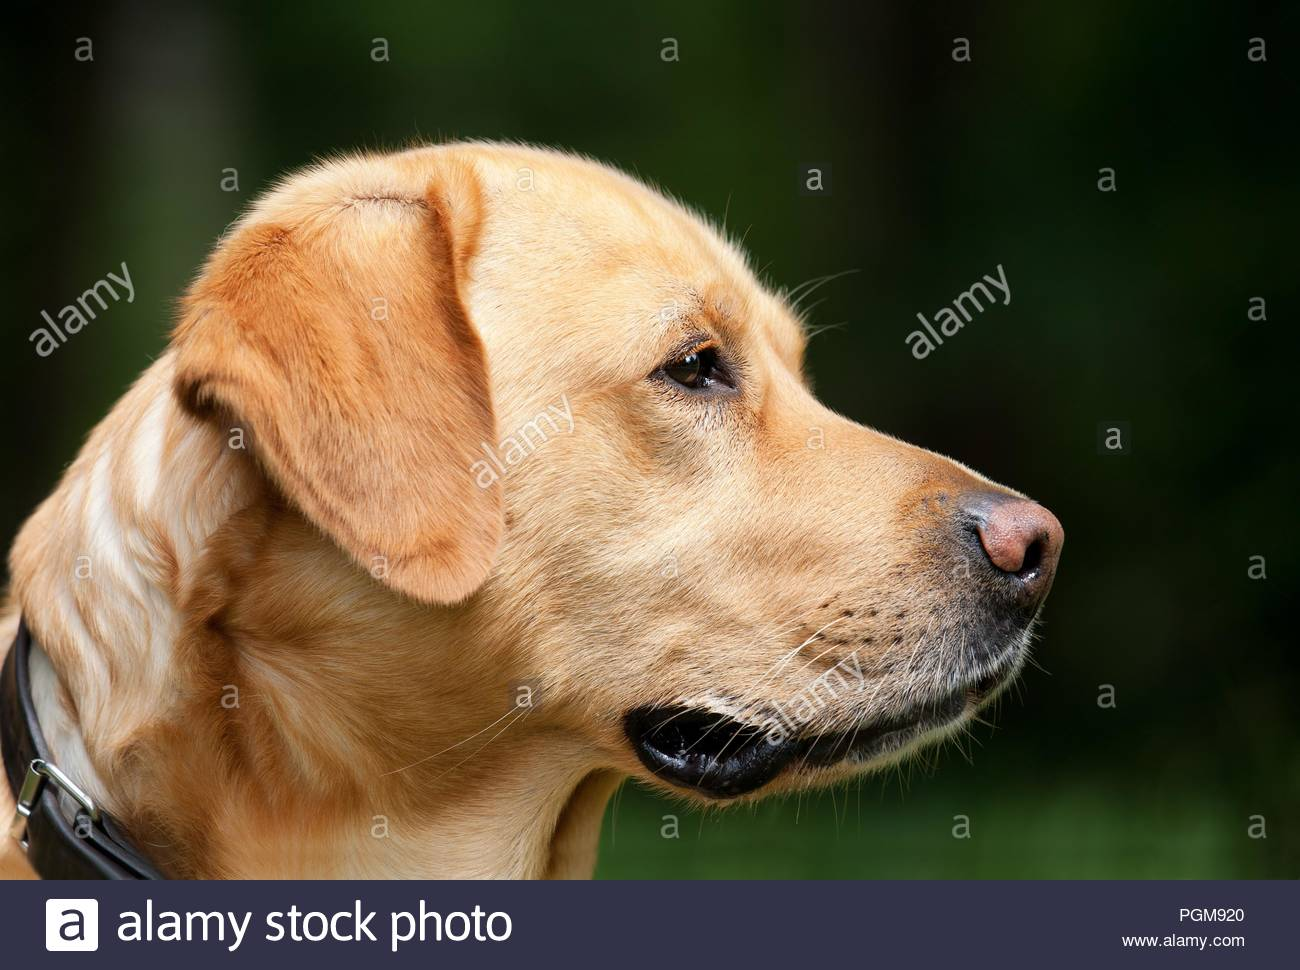 Bettwäsche Dog Side My Side Labrador Light Brown Dog Pet Animal Face Profile Side